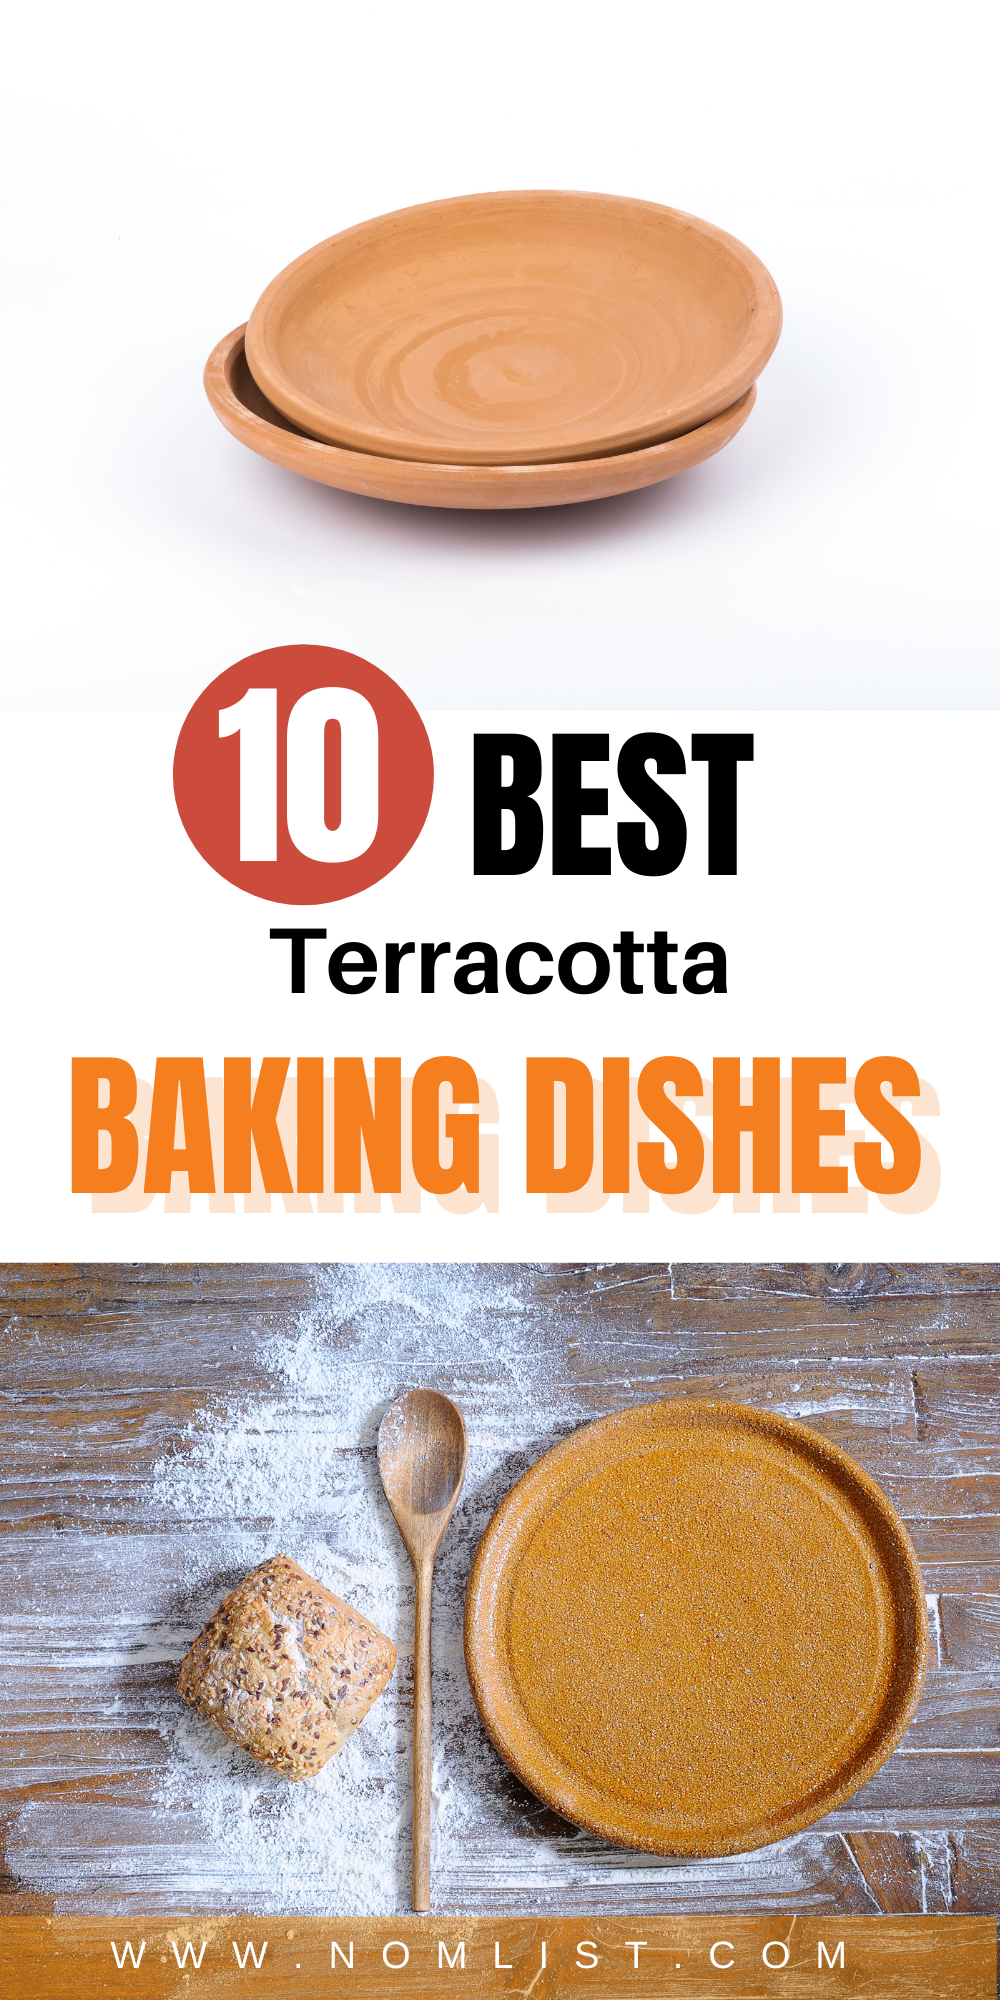 If you want even baking for your home cooking, look no further. Terracotta baking dishes are the best way to get some of the trickiest baked goods to cook perfectly. Whether you're cooking your favorite Indian recipes or looking to try out a Mediterranean bread, check out the best terracotta baking dishes here!